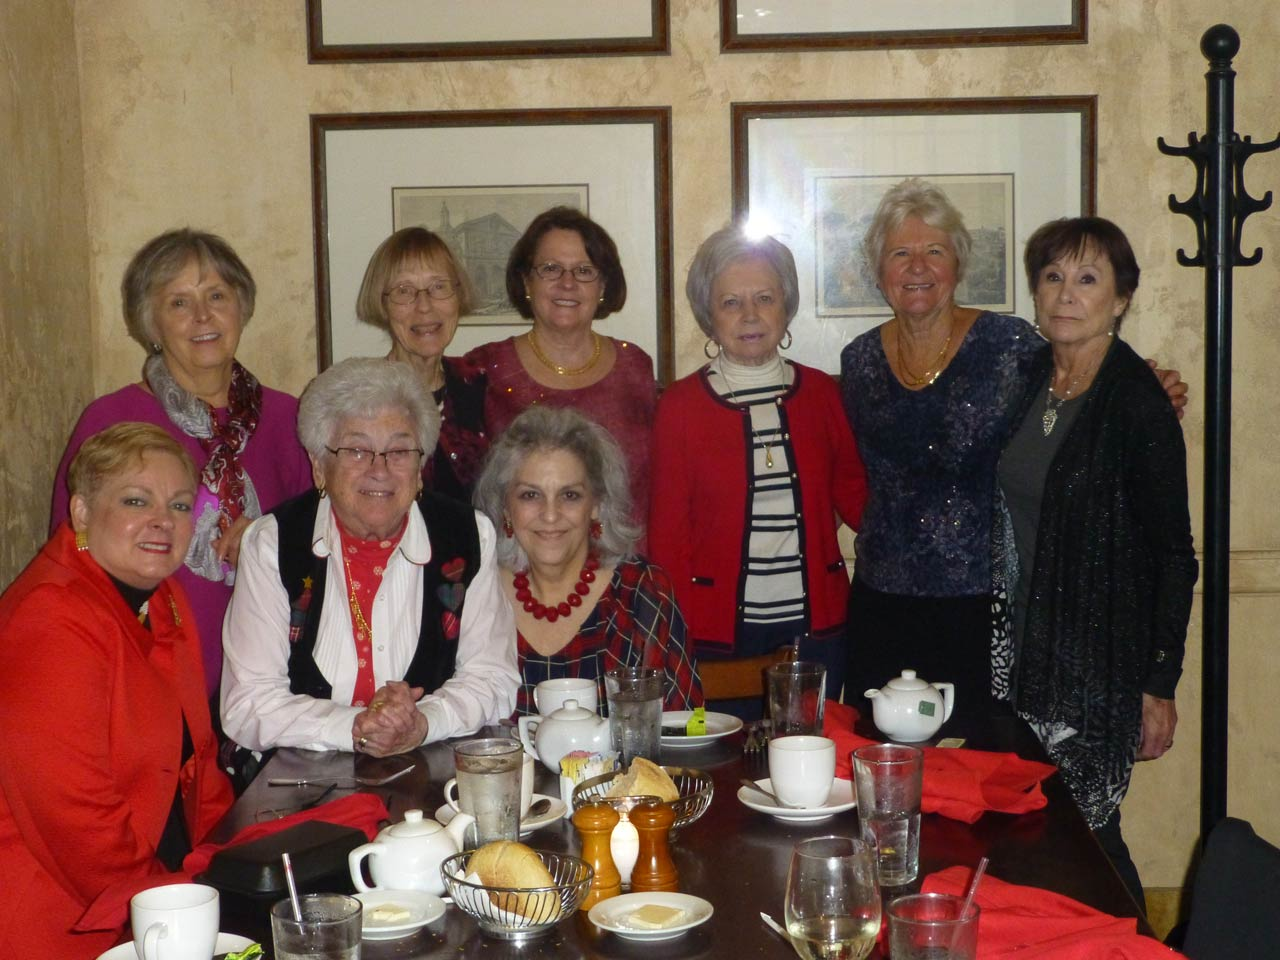 Aramco ladies luncheon at the Brio Tuscan Grille on December 19, 2017